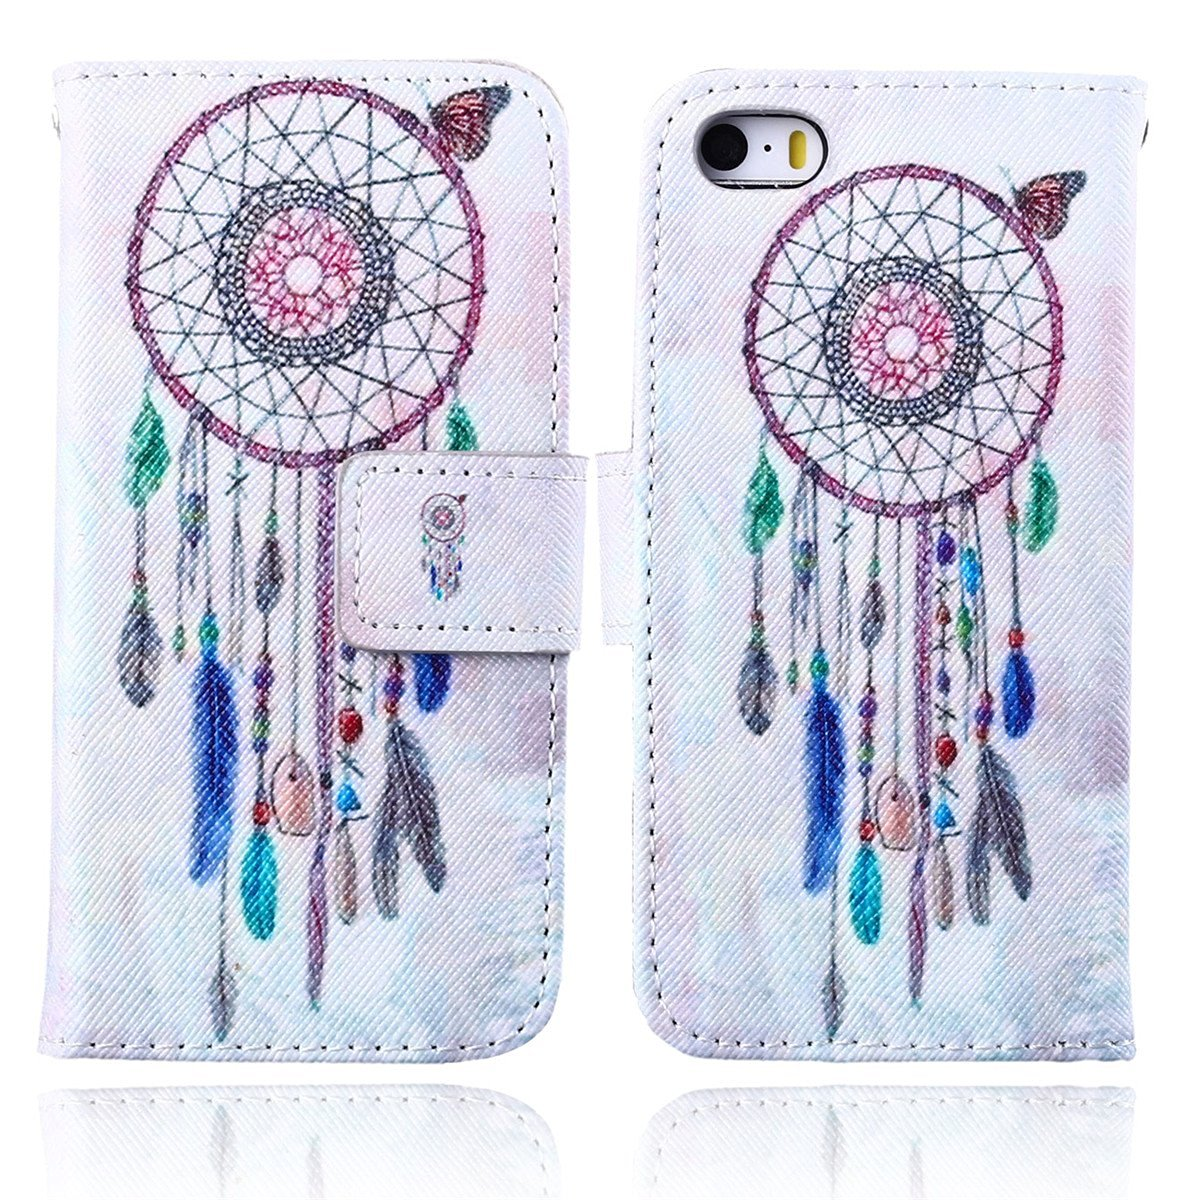 iPhone 5C Case,5C Case,Gift_Source Brand New [Stand Feature] Case [Slim Fit] Folio Leather Stand [Wallet] Shell Cover with Card Holder Compatible with Apple iPhone 5C [Colour DreamCatcher] ,Sent Screen Protector + Stylus Pen